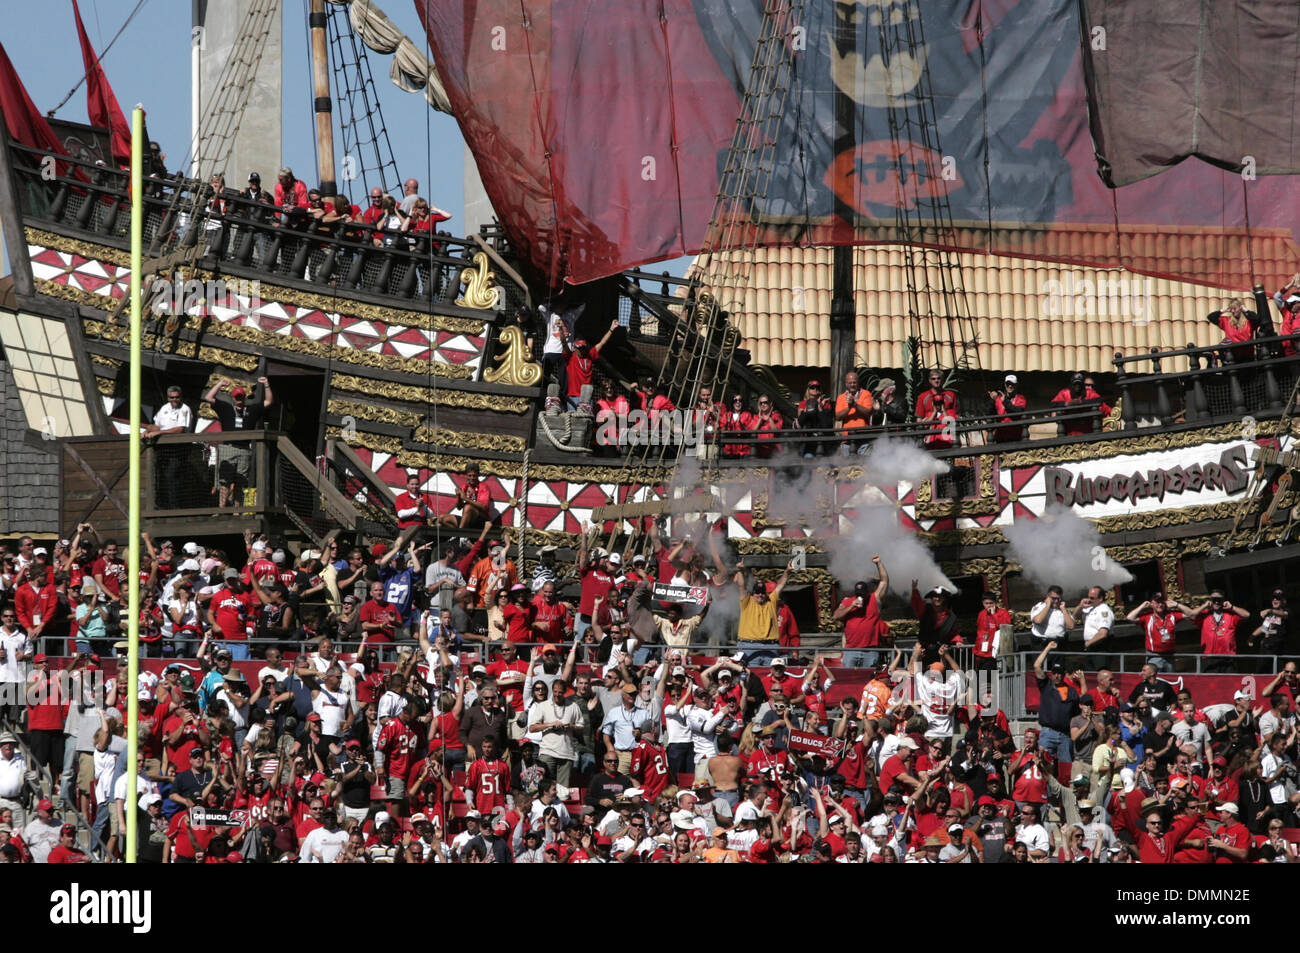 866060e2 October 18, 2009: The pirate ship in the endzone at Raymond James ...